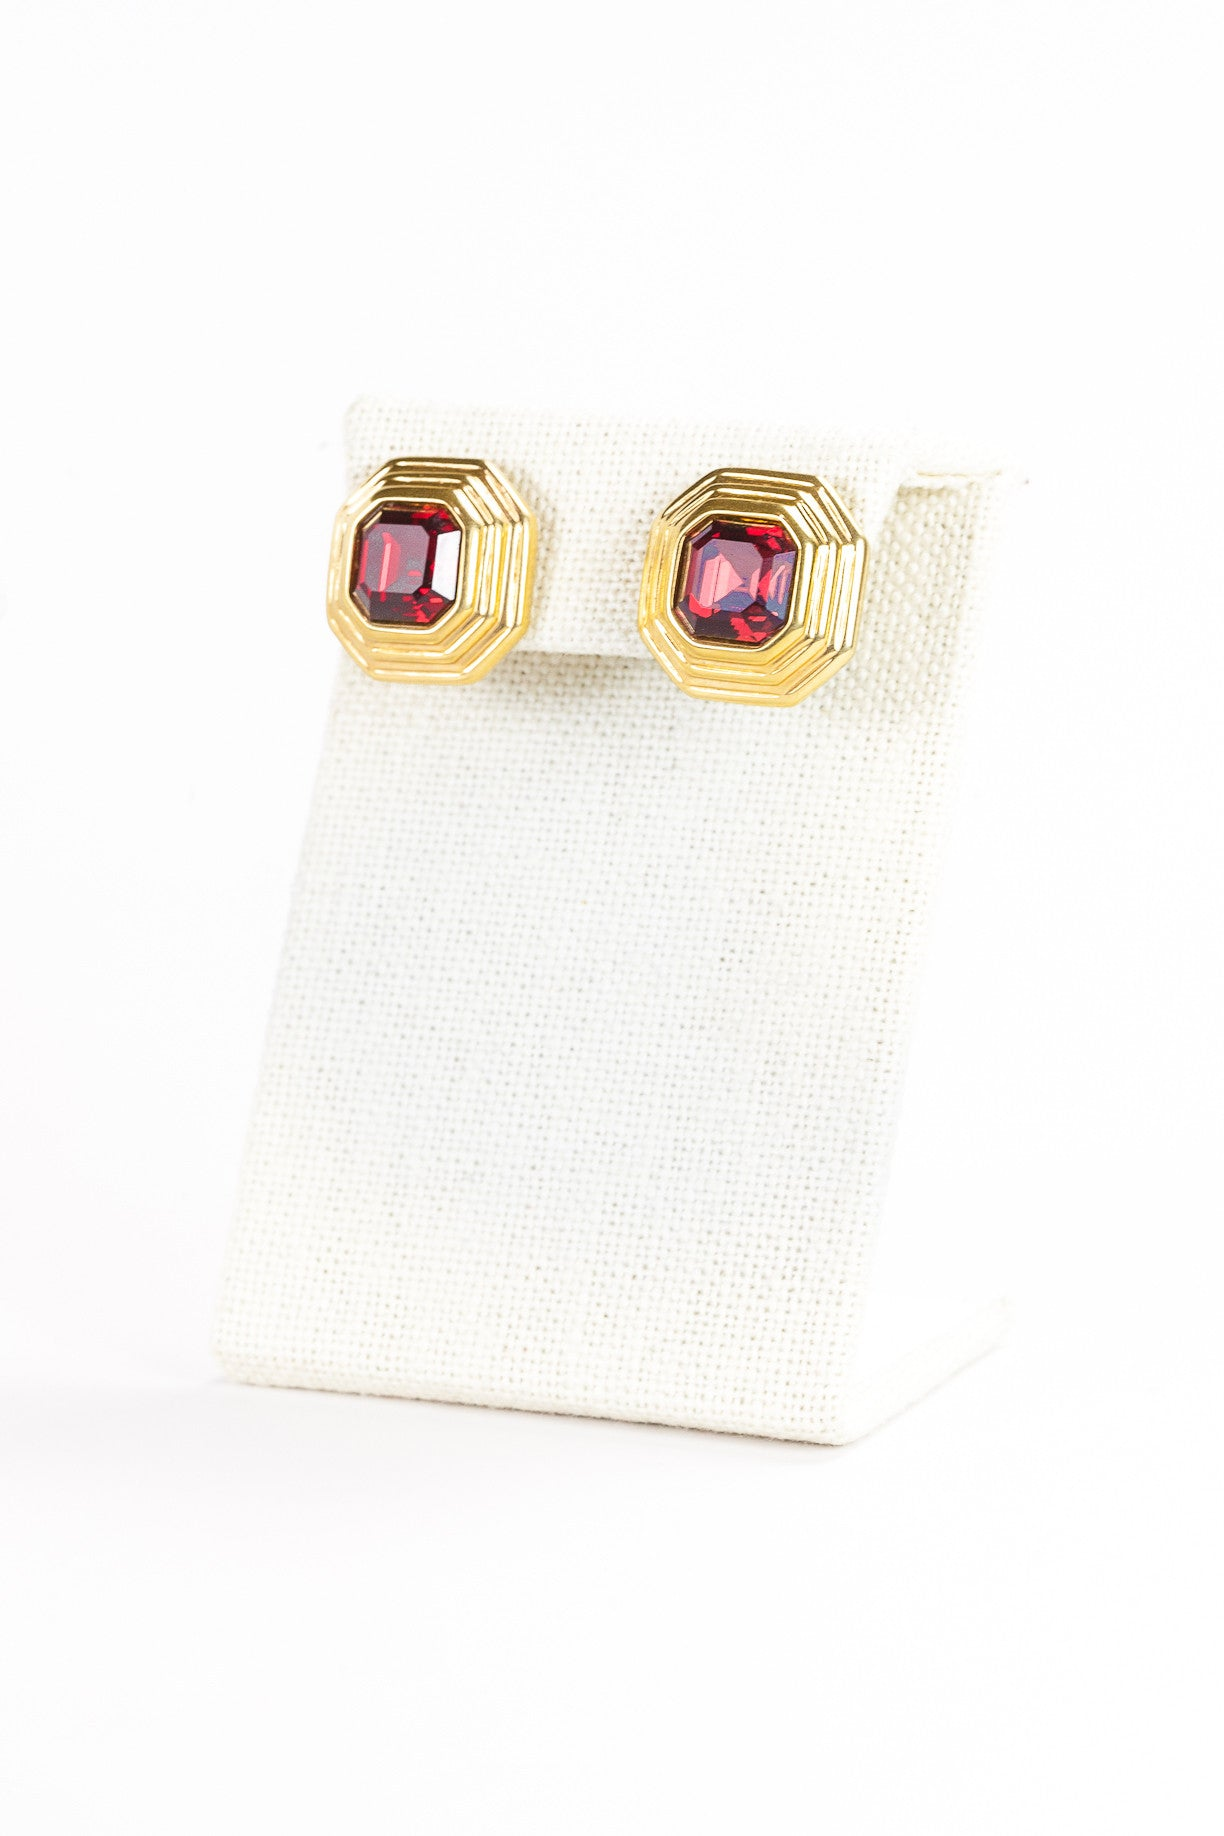 90's__Swarovski__Red Jeweled Rhinestone Earrings